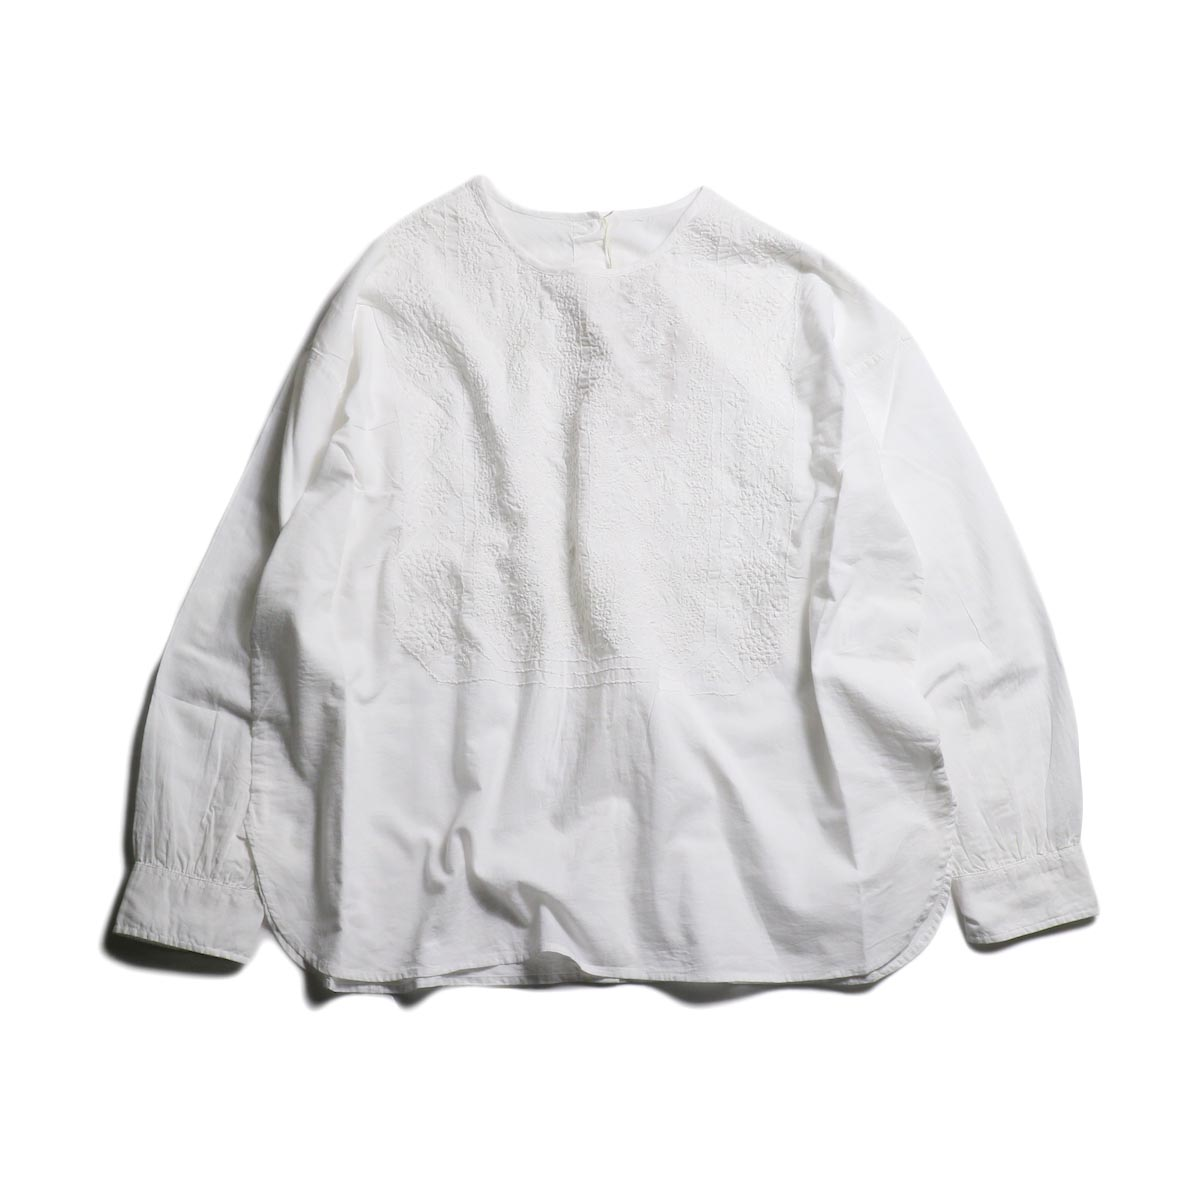 maison de soil / Back Opening Crew Neck EMB Shirt -White